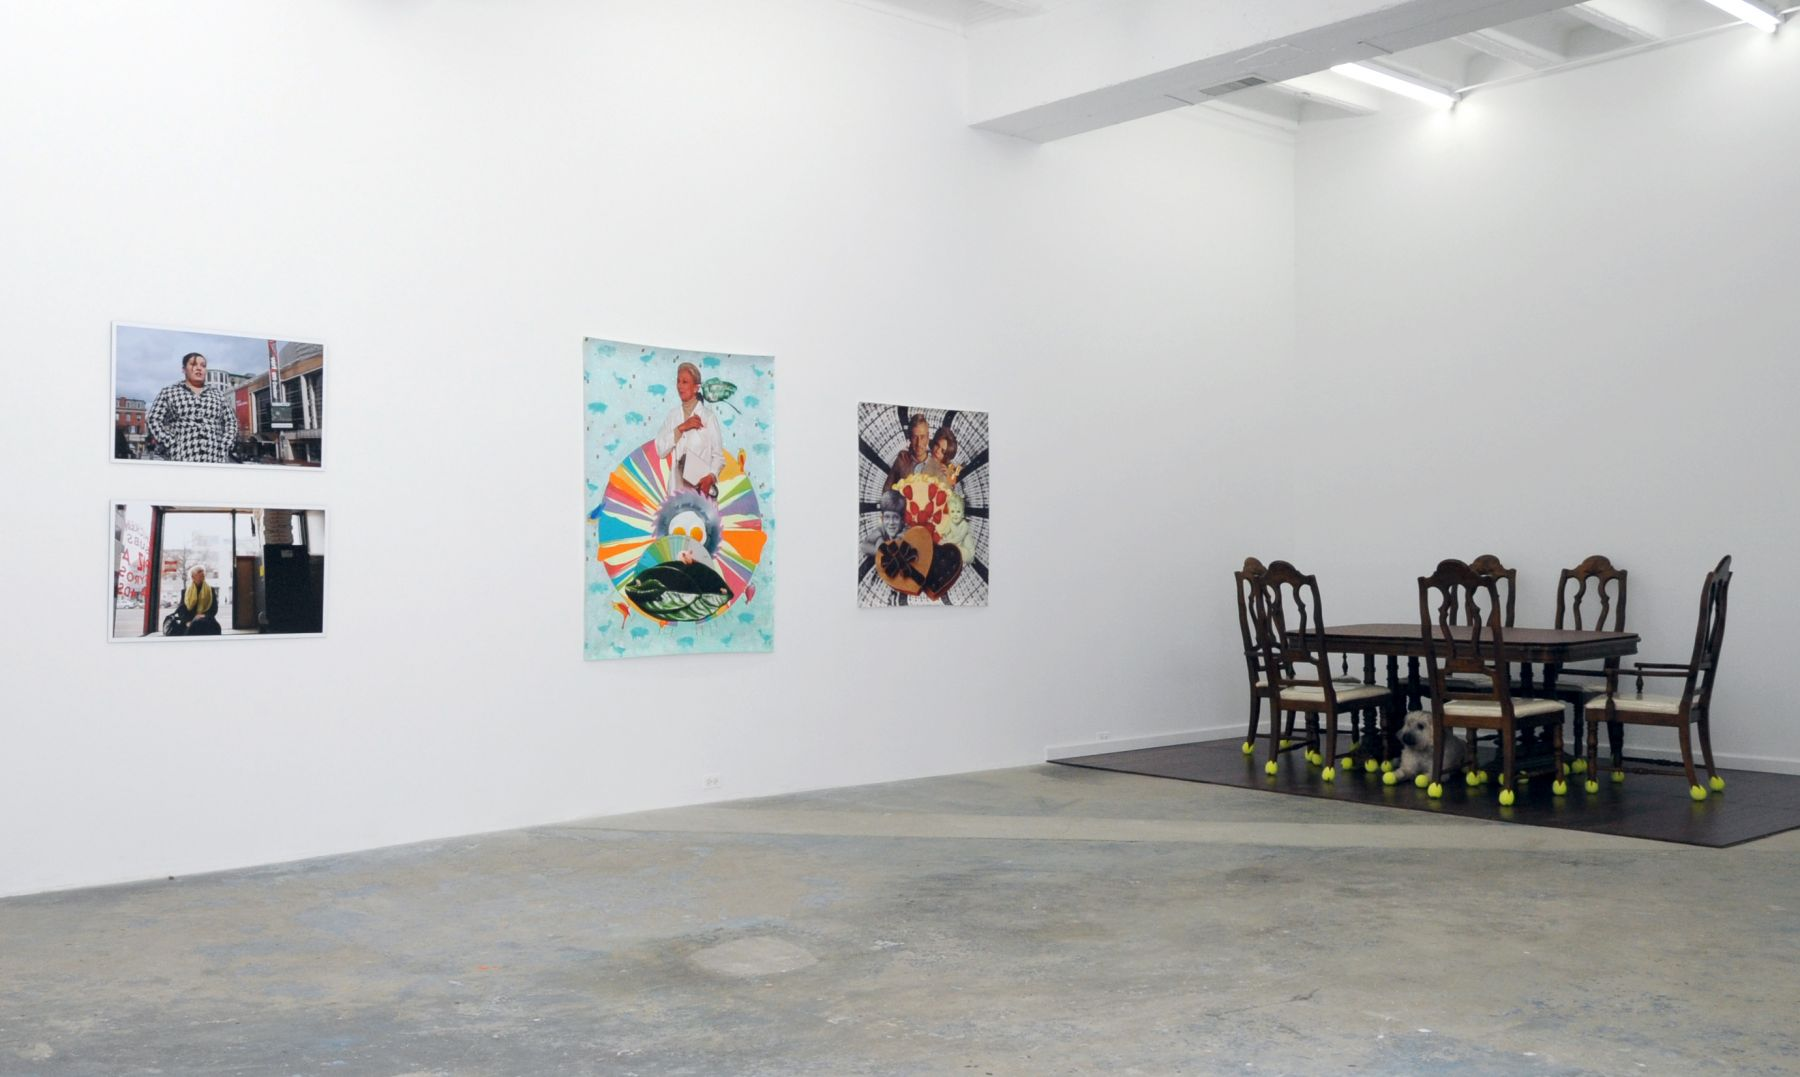 vSIERRA SURIS, LIBBY LANDAUER and GINNY HUO ACADEMY 2011 Installation view: Conner Contemporary Art.